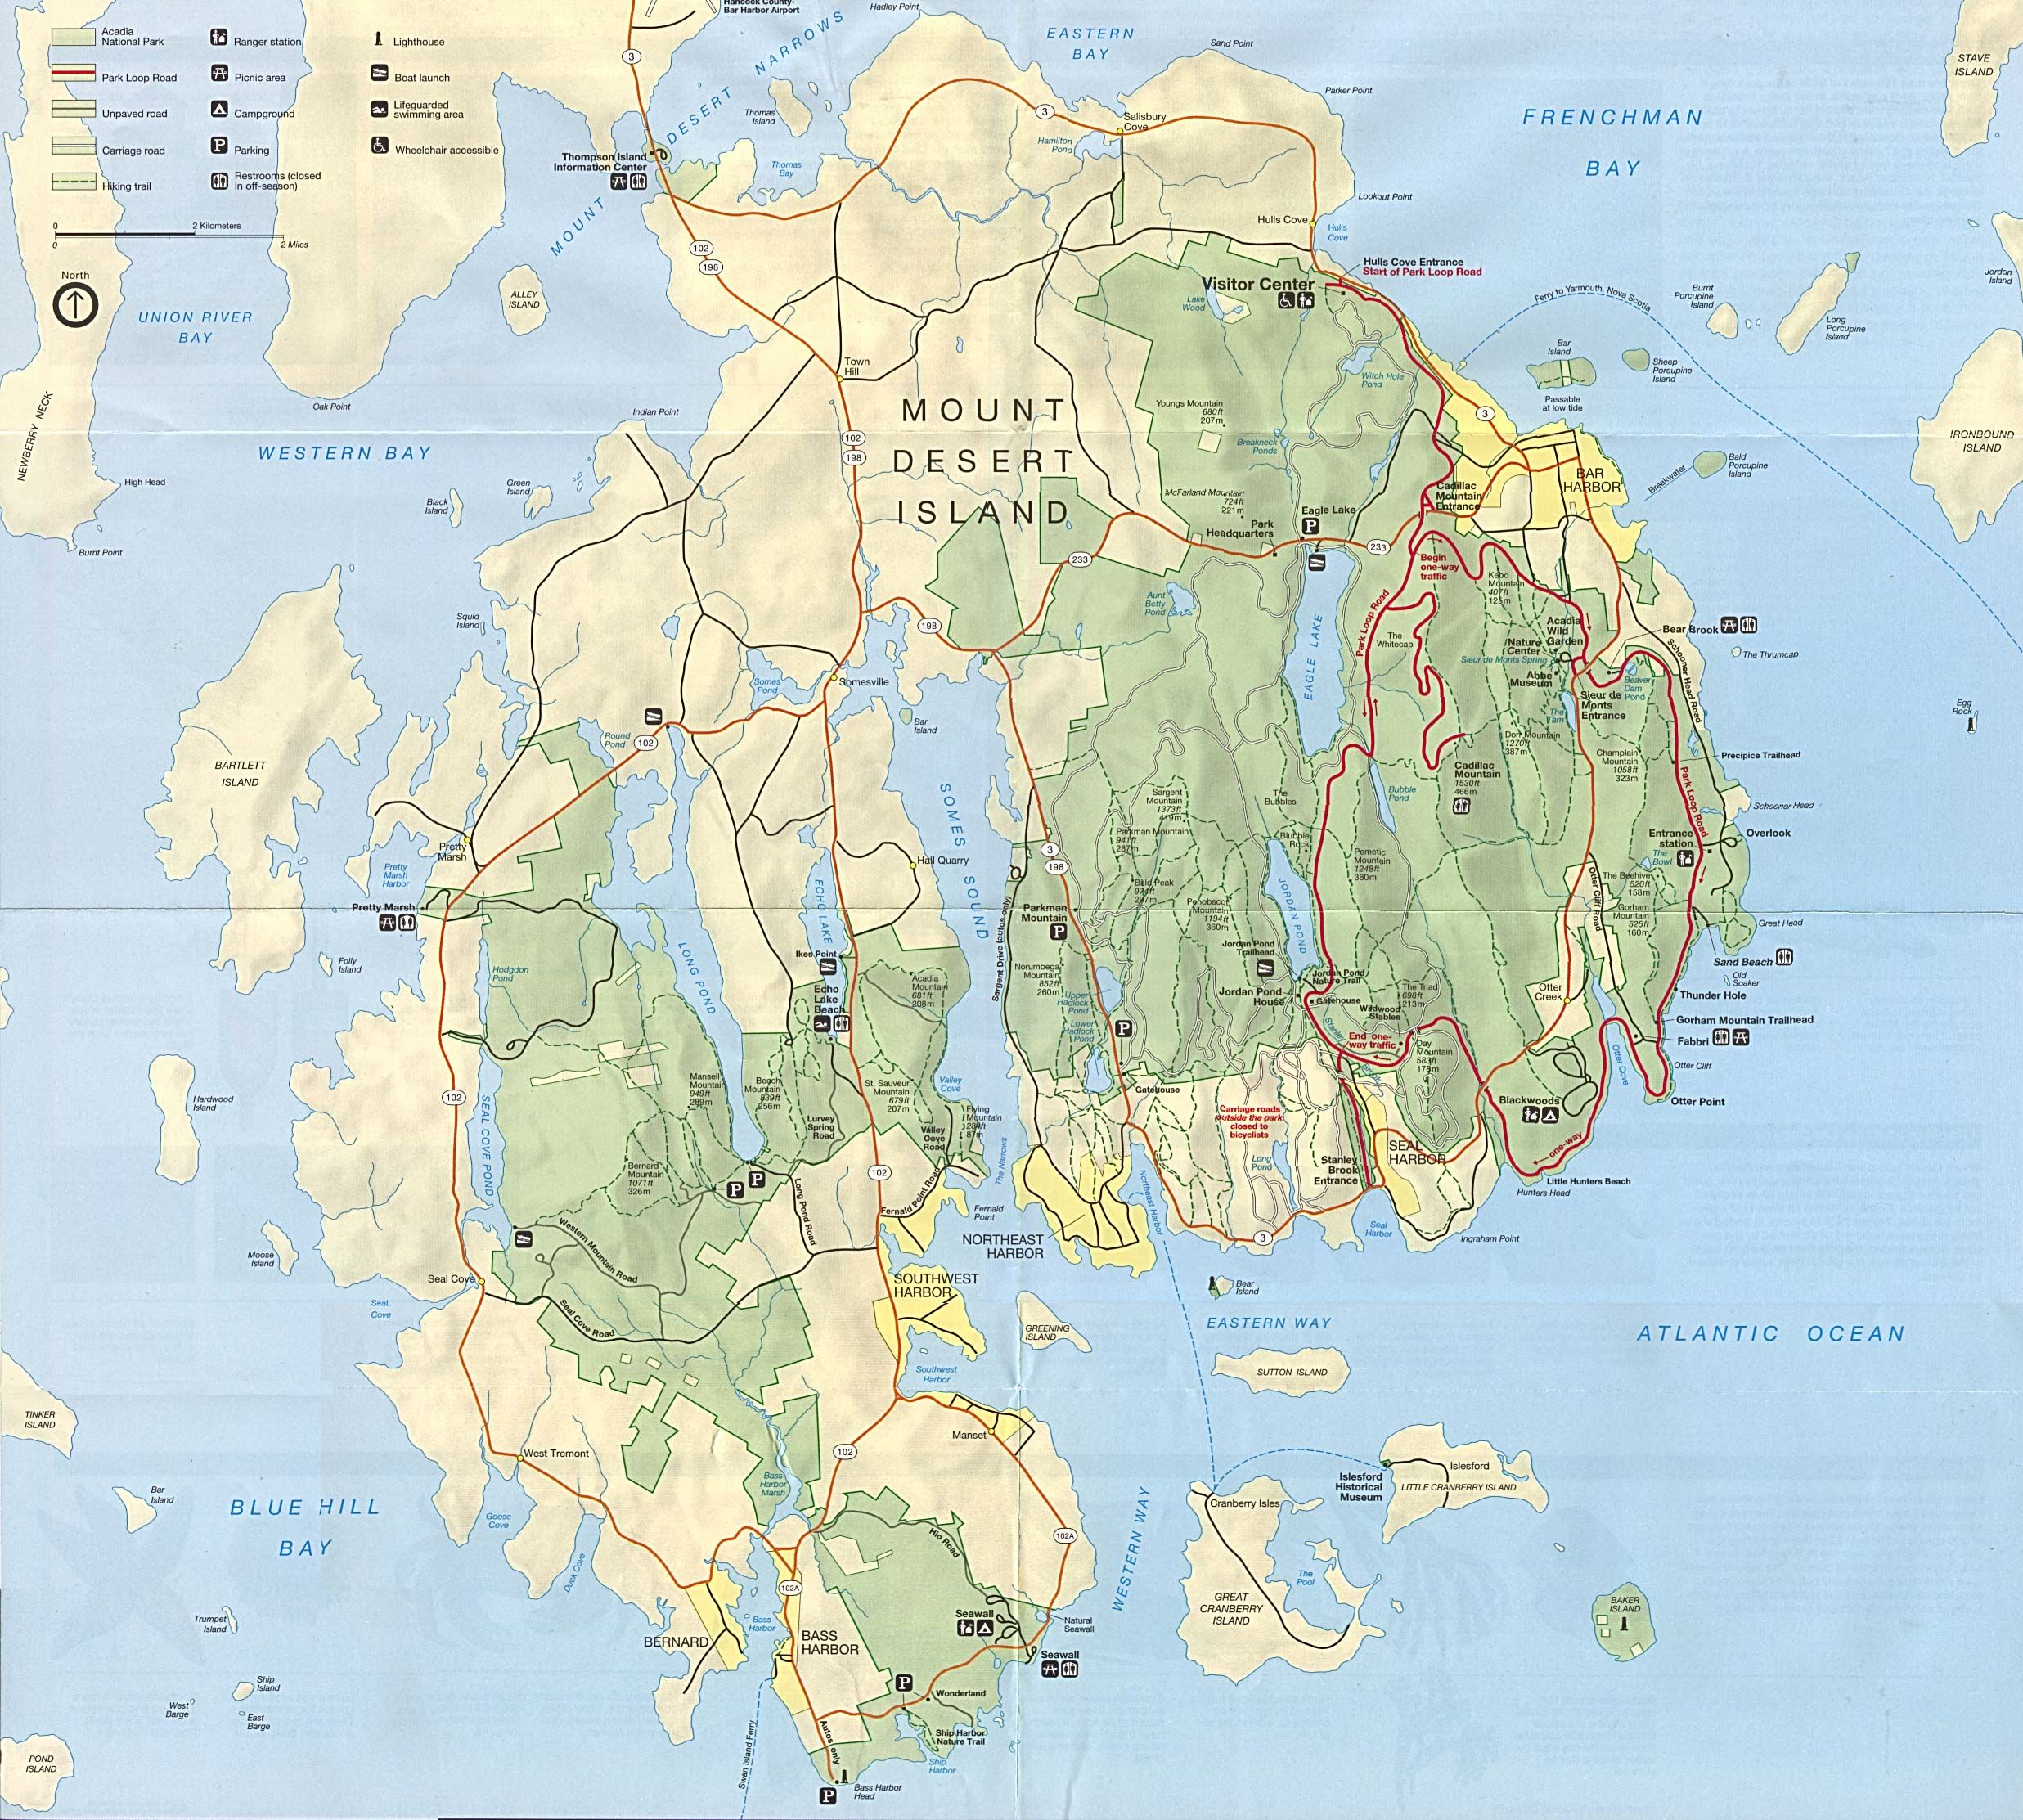 Mount Desert Island Acadia National Park Map The World It A - Map of national parks in united states